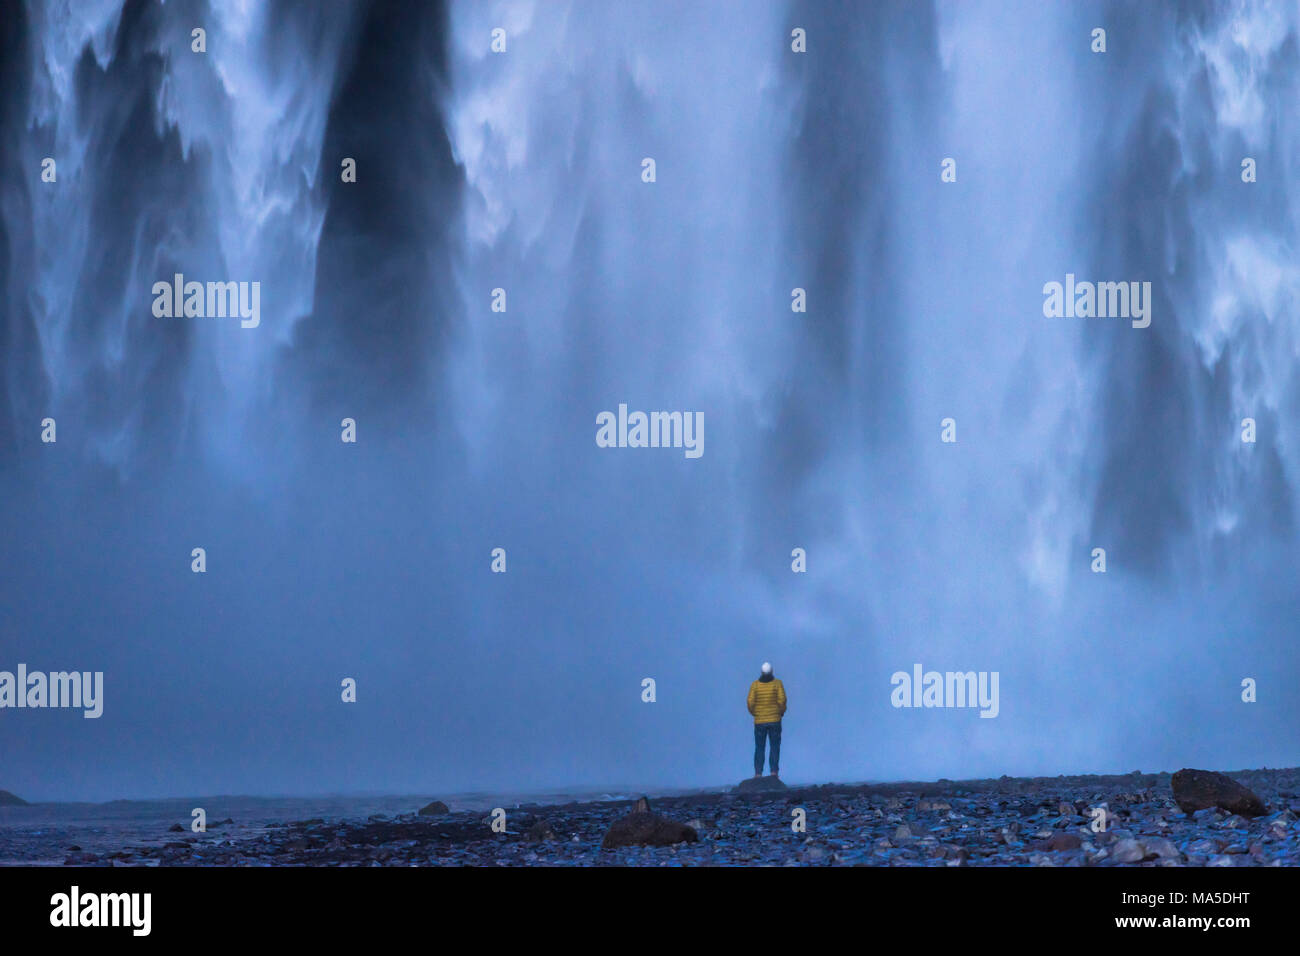 Europe, Northern Europe, Iceland, Skógar, person enjoys the sensational spectacle of the water masses at Skógafoss - Stock Image